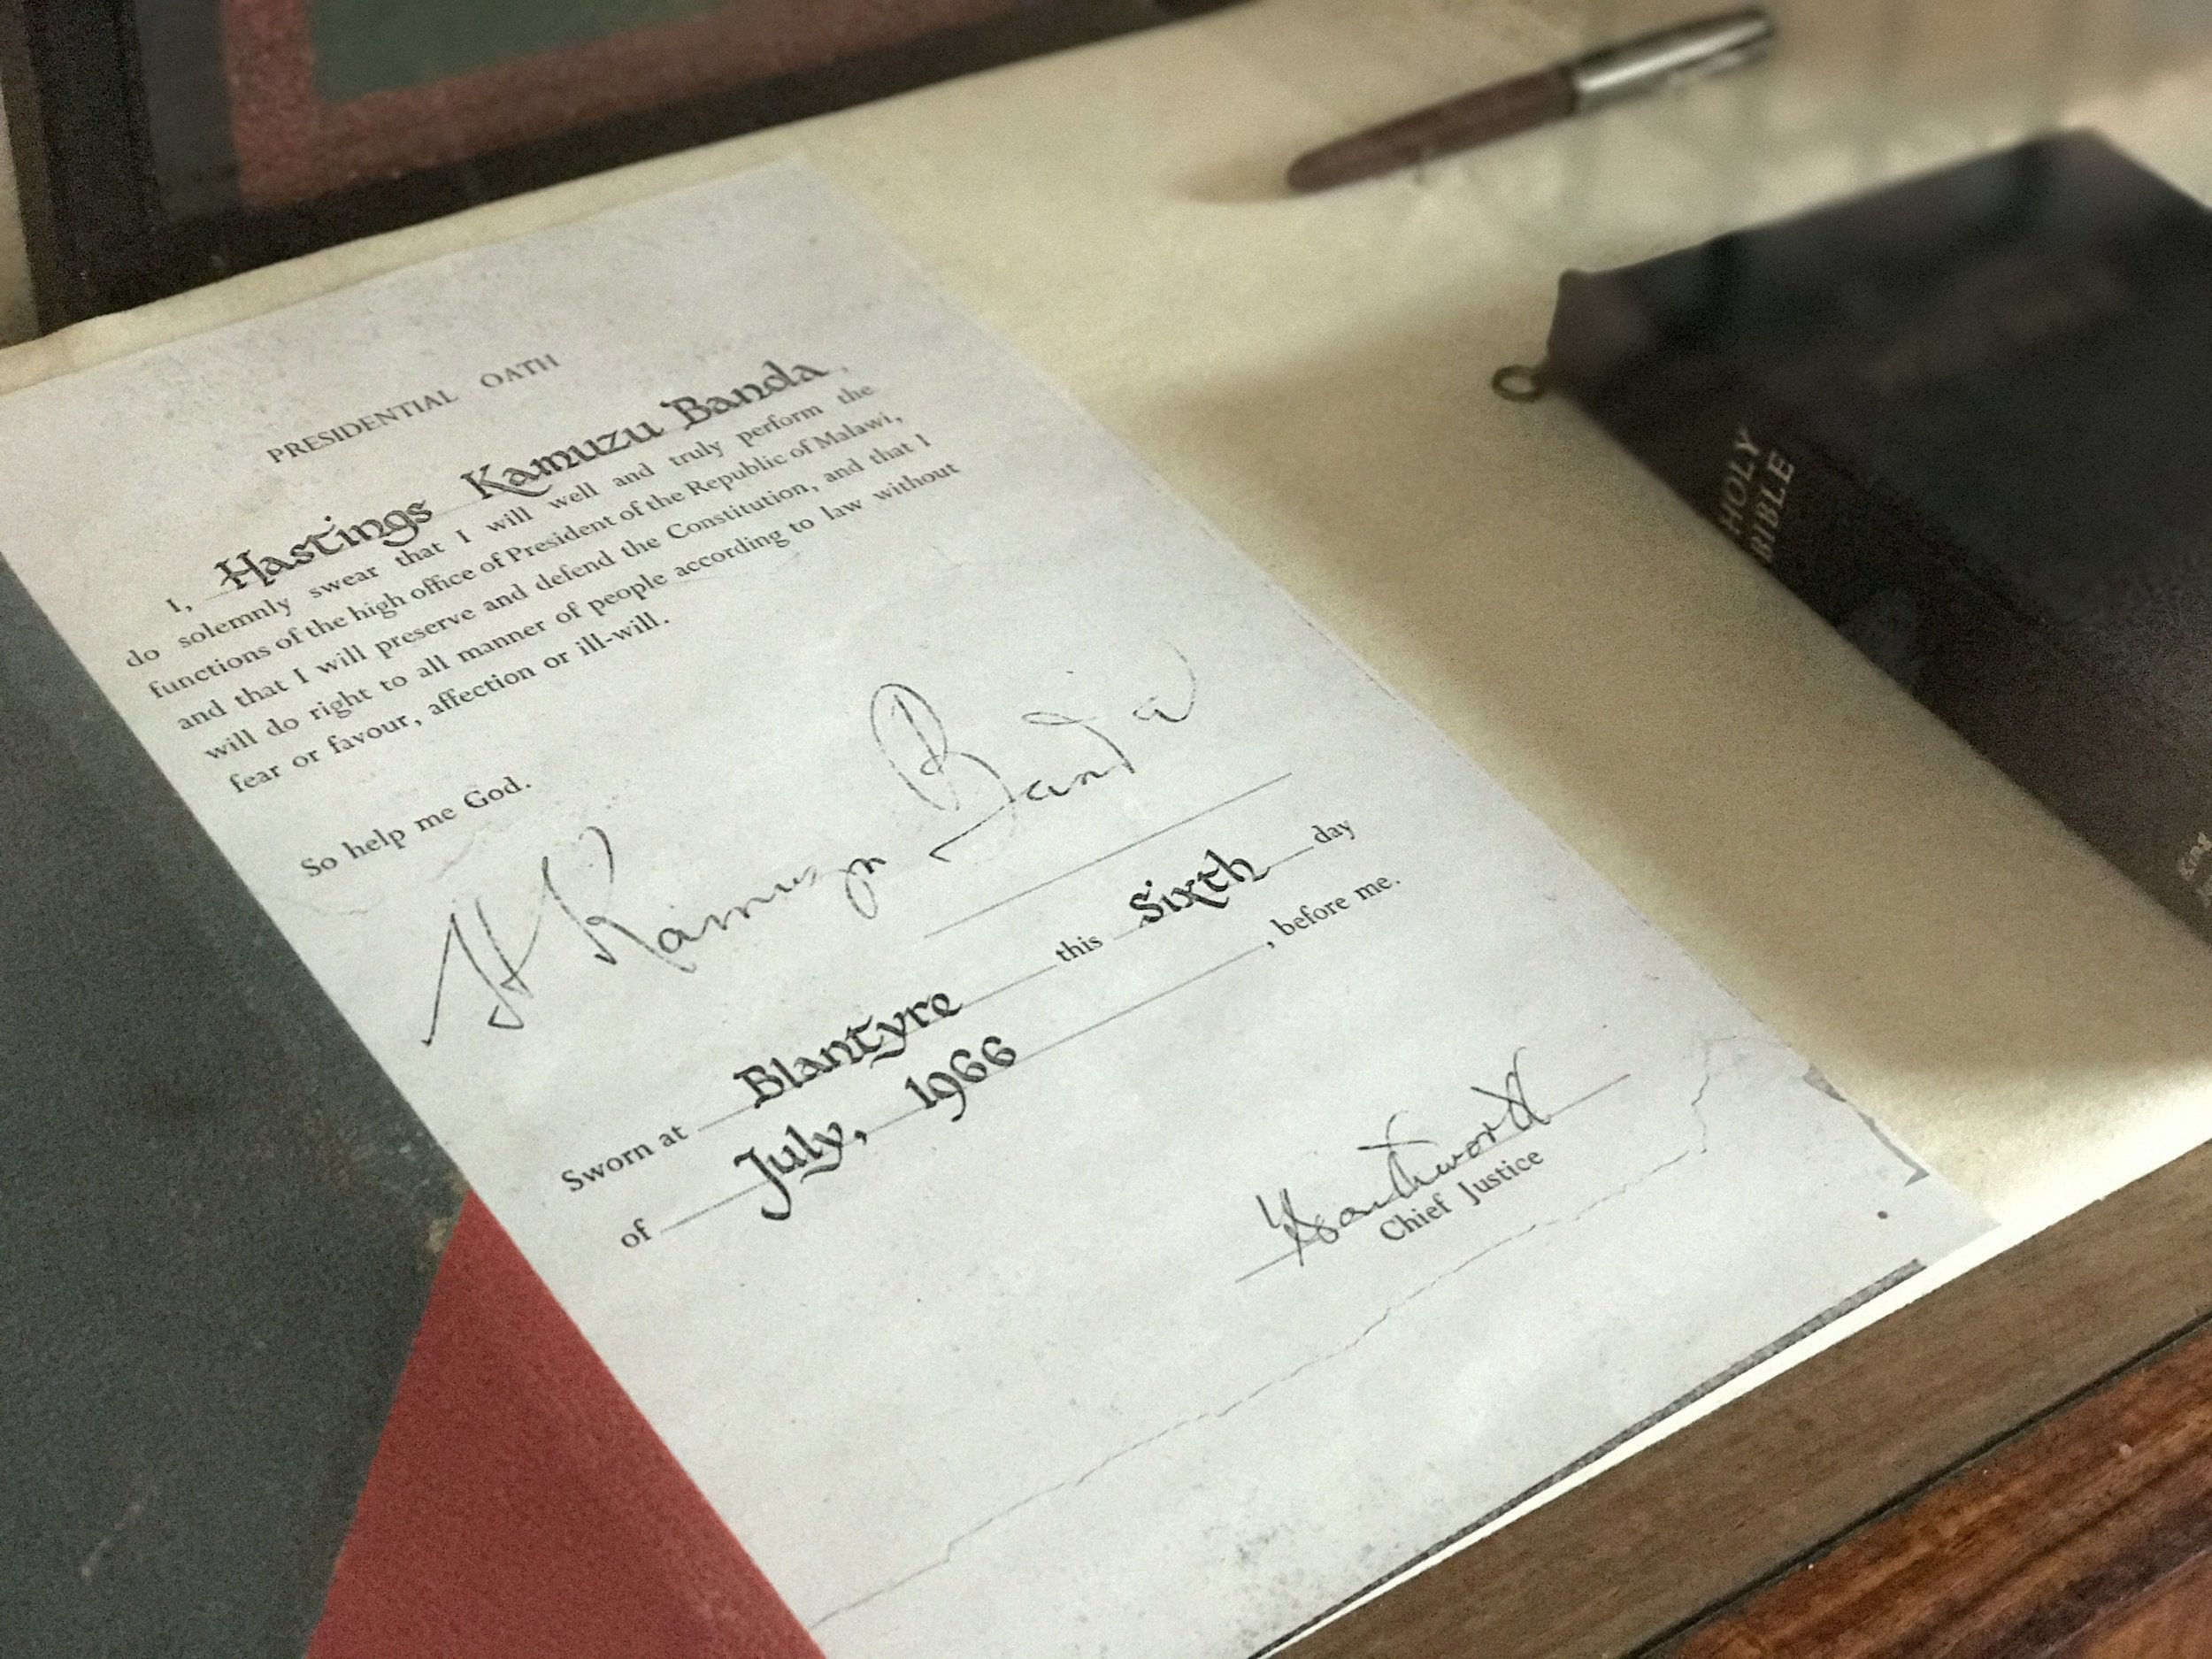 The oath of office, signed by Malawi's first president, Hastings Kamuzu Banda, in 1966.